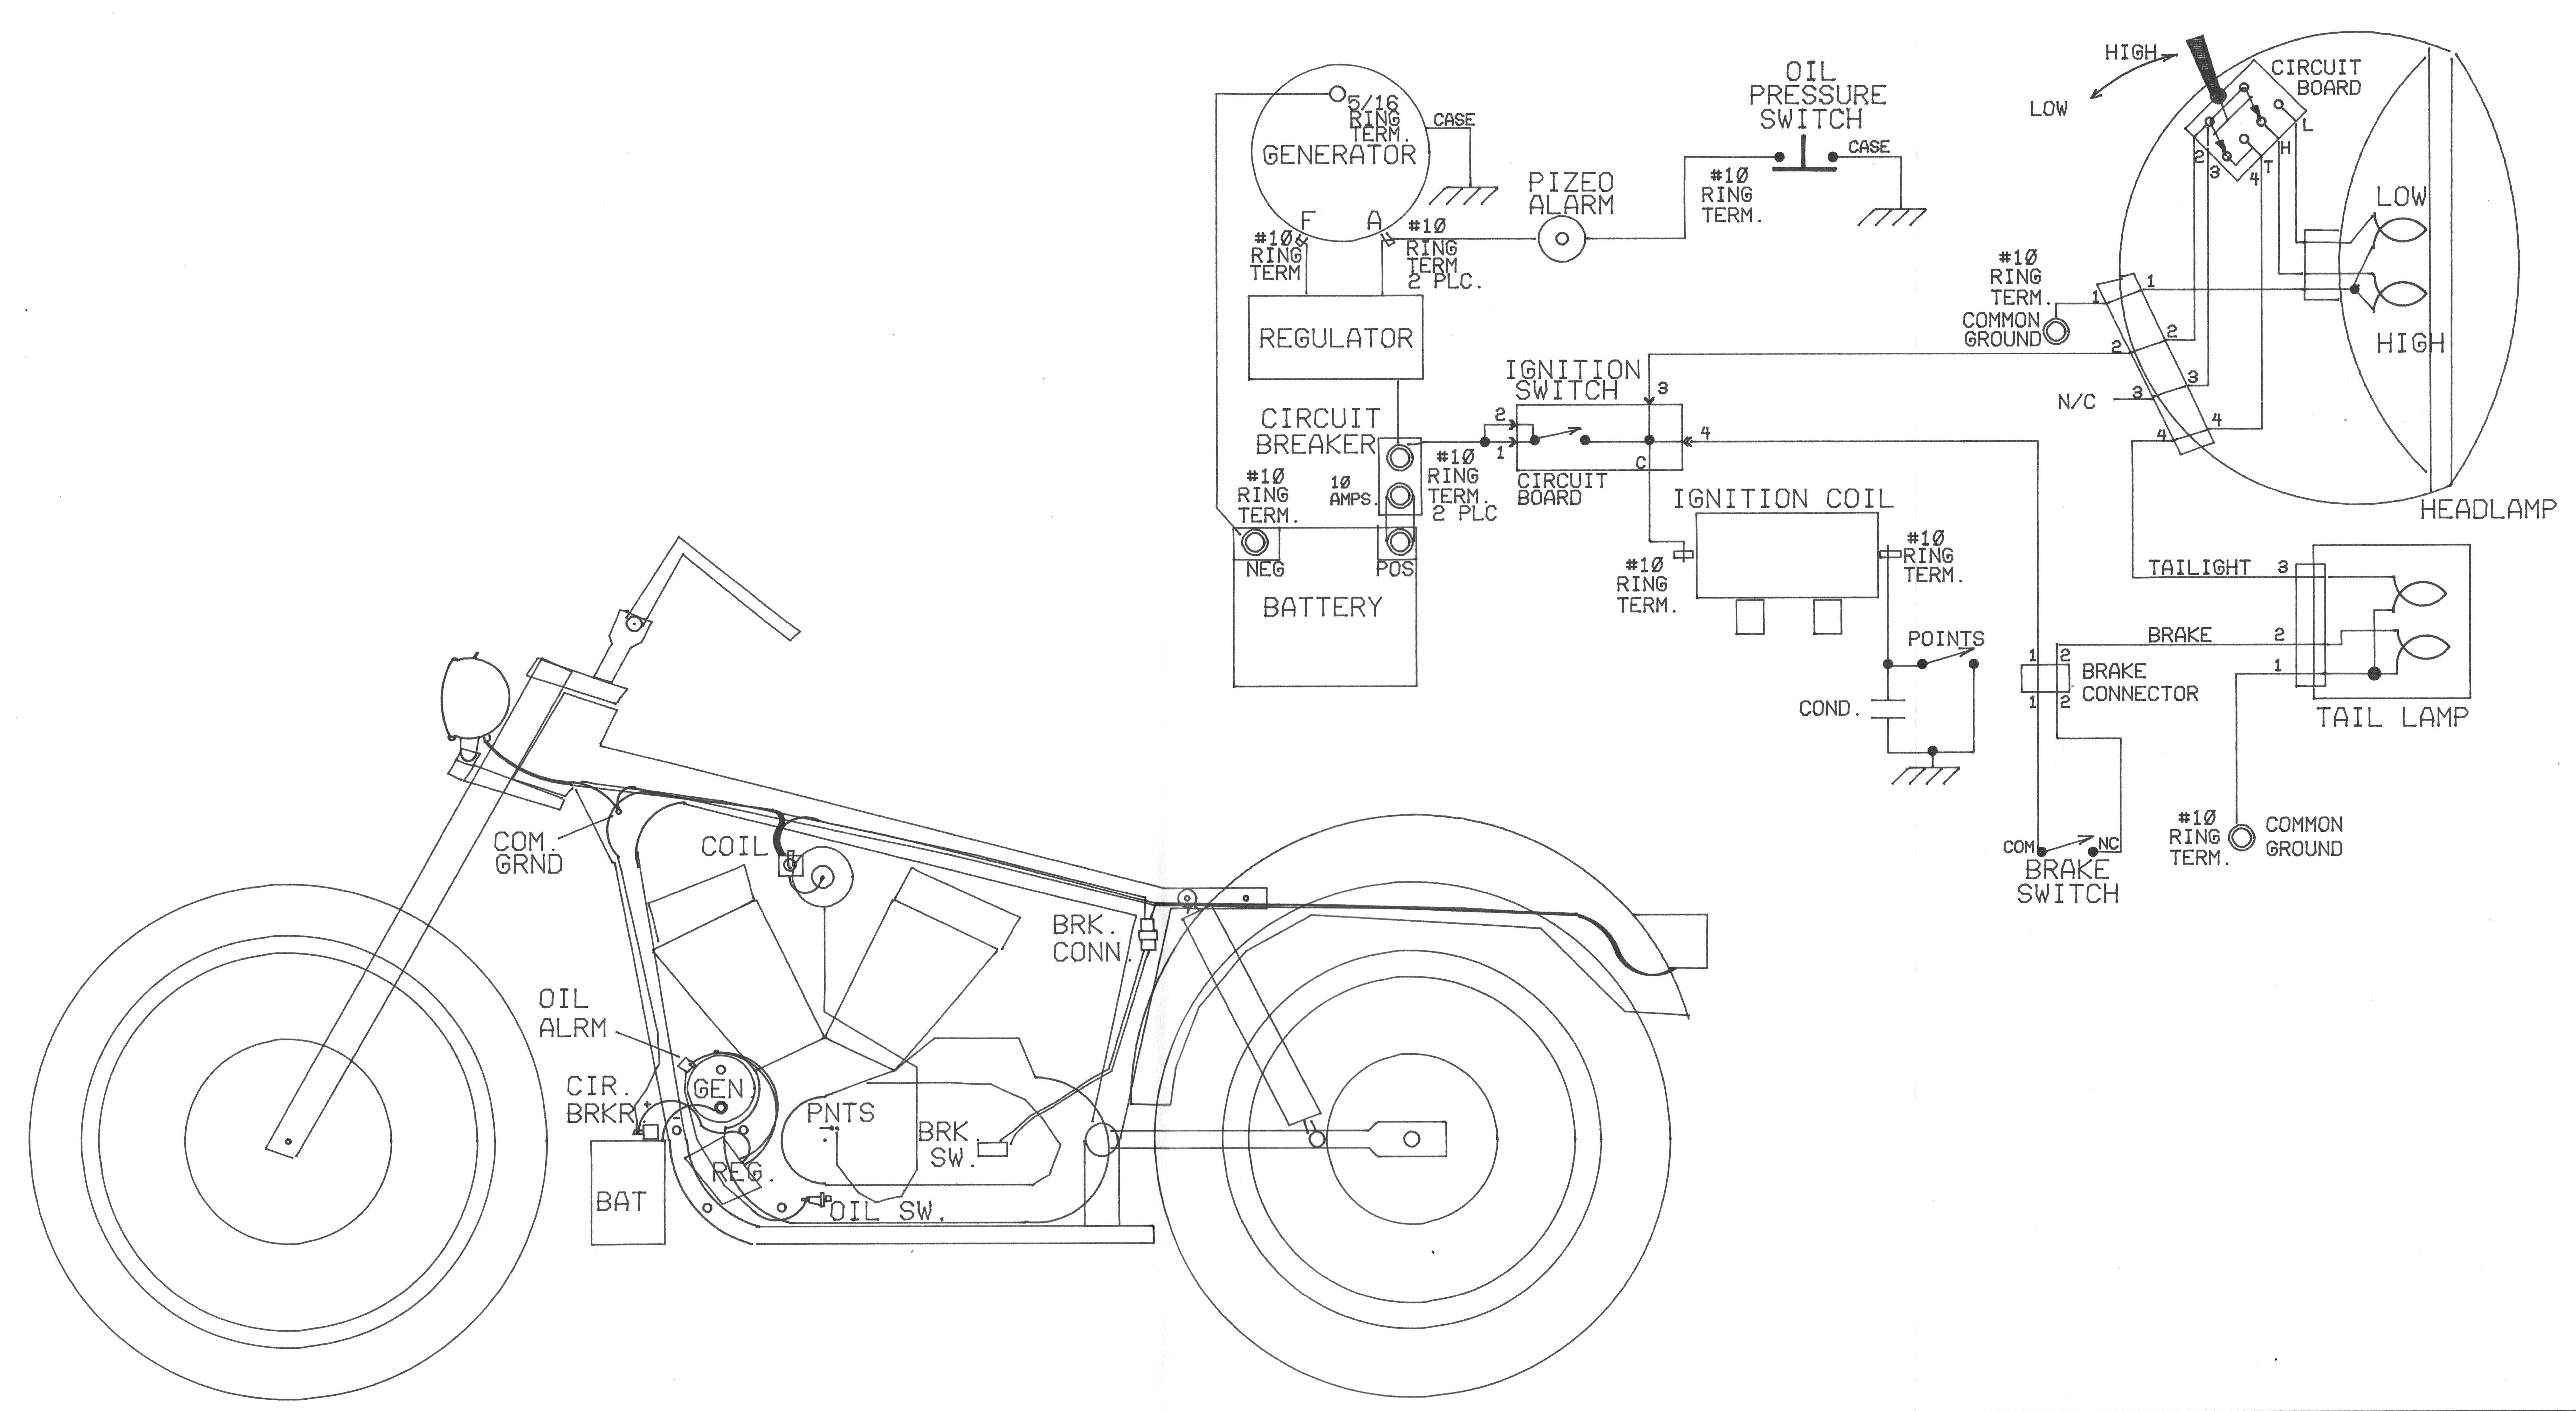 Sportster Frame Diagram Electrical Wiring Diagrams Wire Harness For A 73 Ironhead Harley Shovelhead Dimensions Allframes5 Org Windshield Example